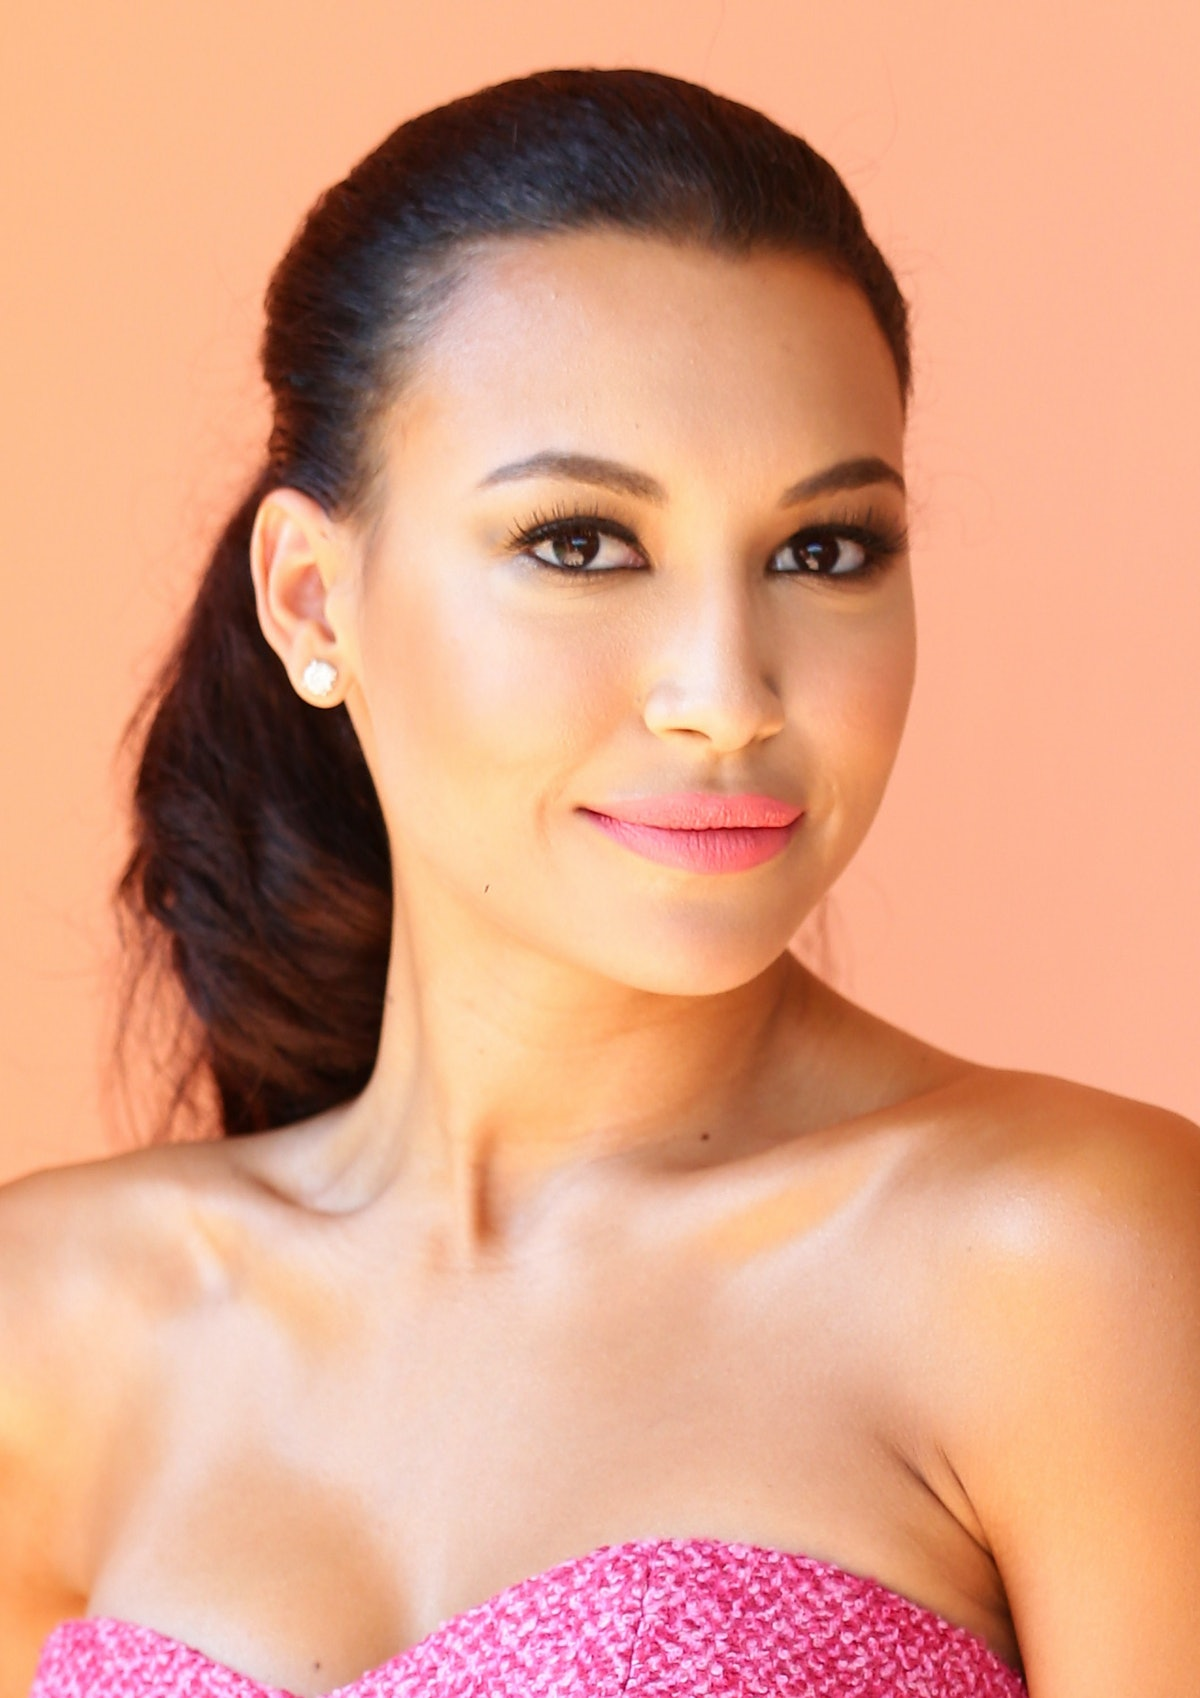 Naya Rivera, shown here in pink lipstick and a ponytail, will be missed by her 'Glee' co-stars.